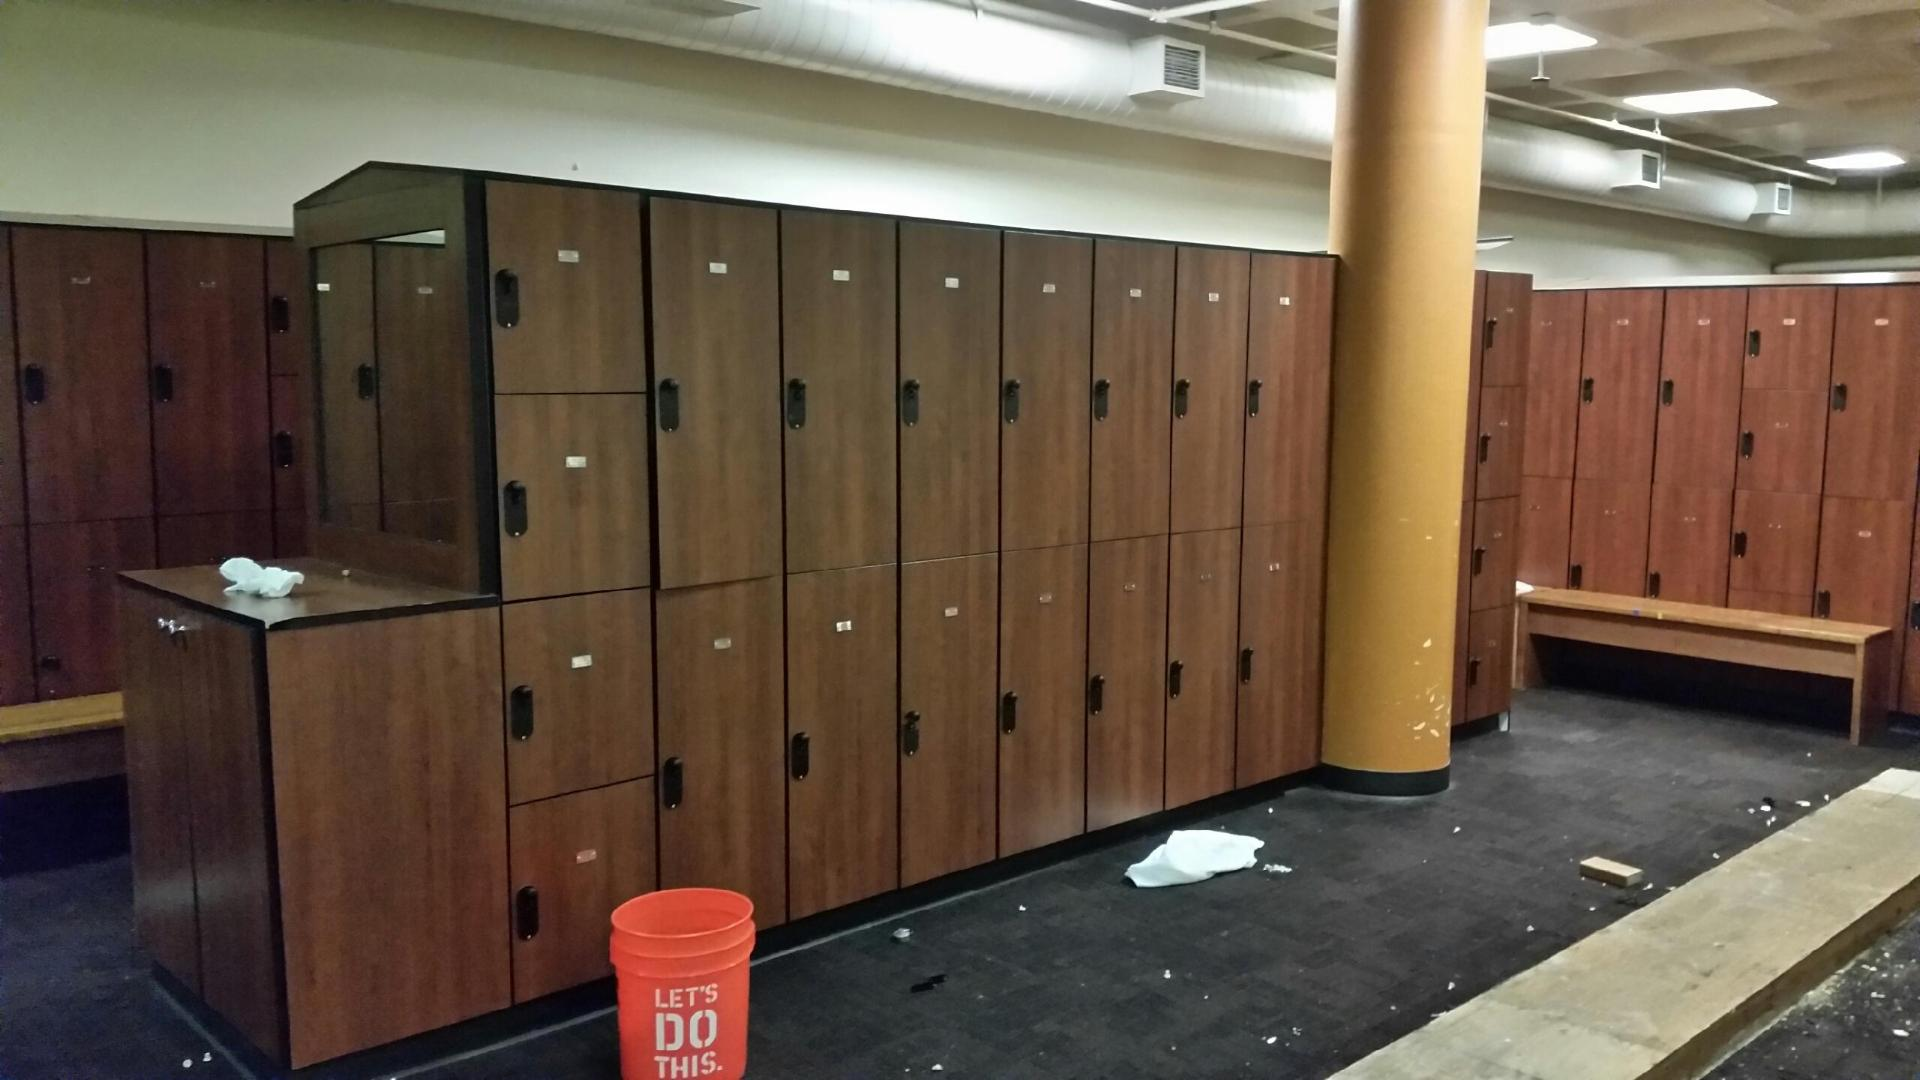 Gym lockers for sale primo fitness